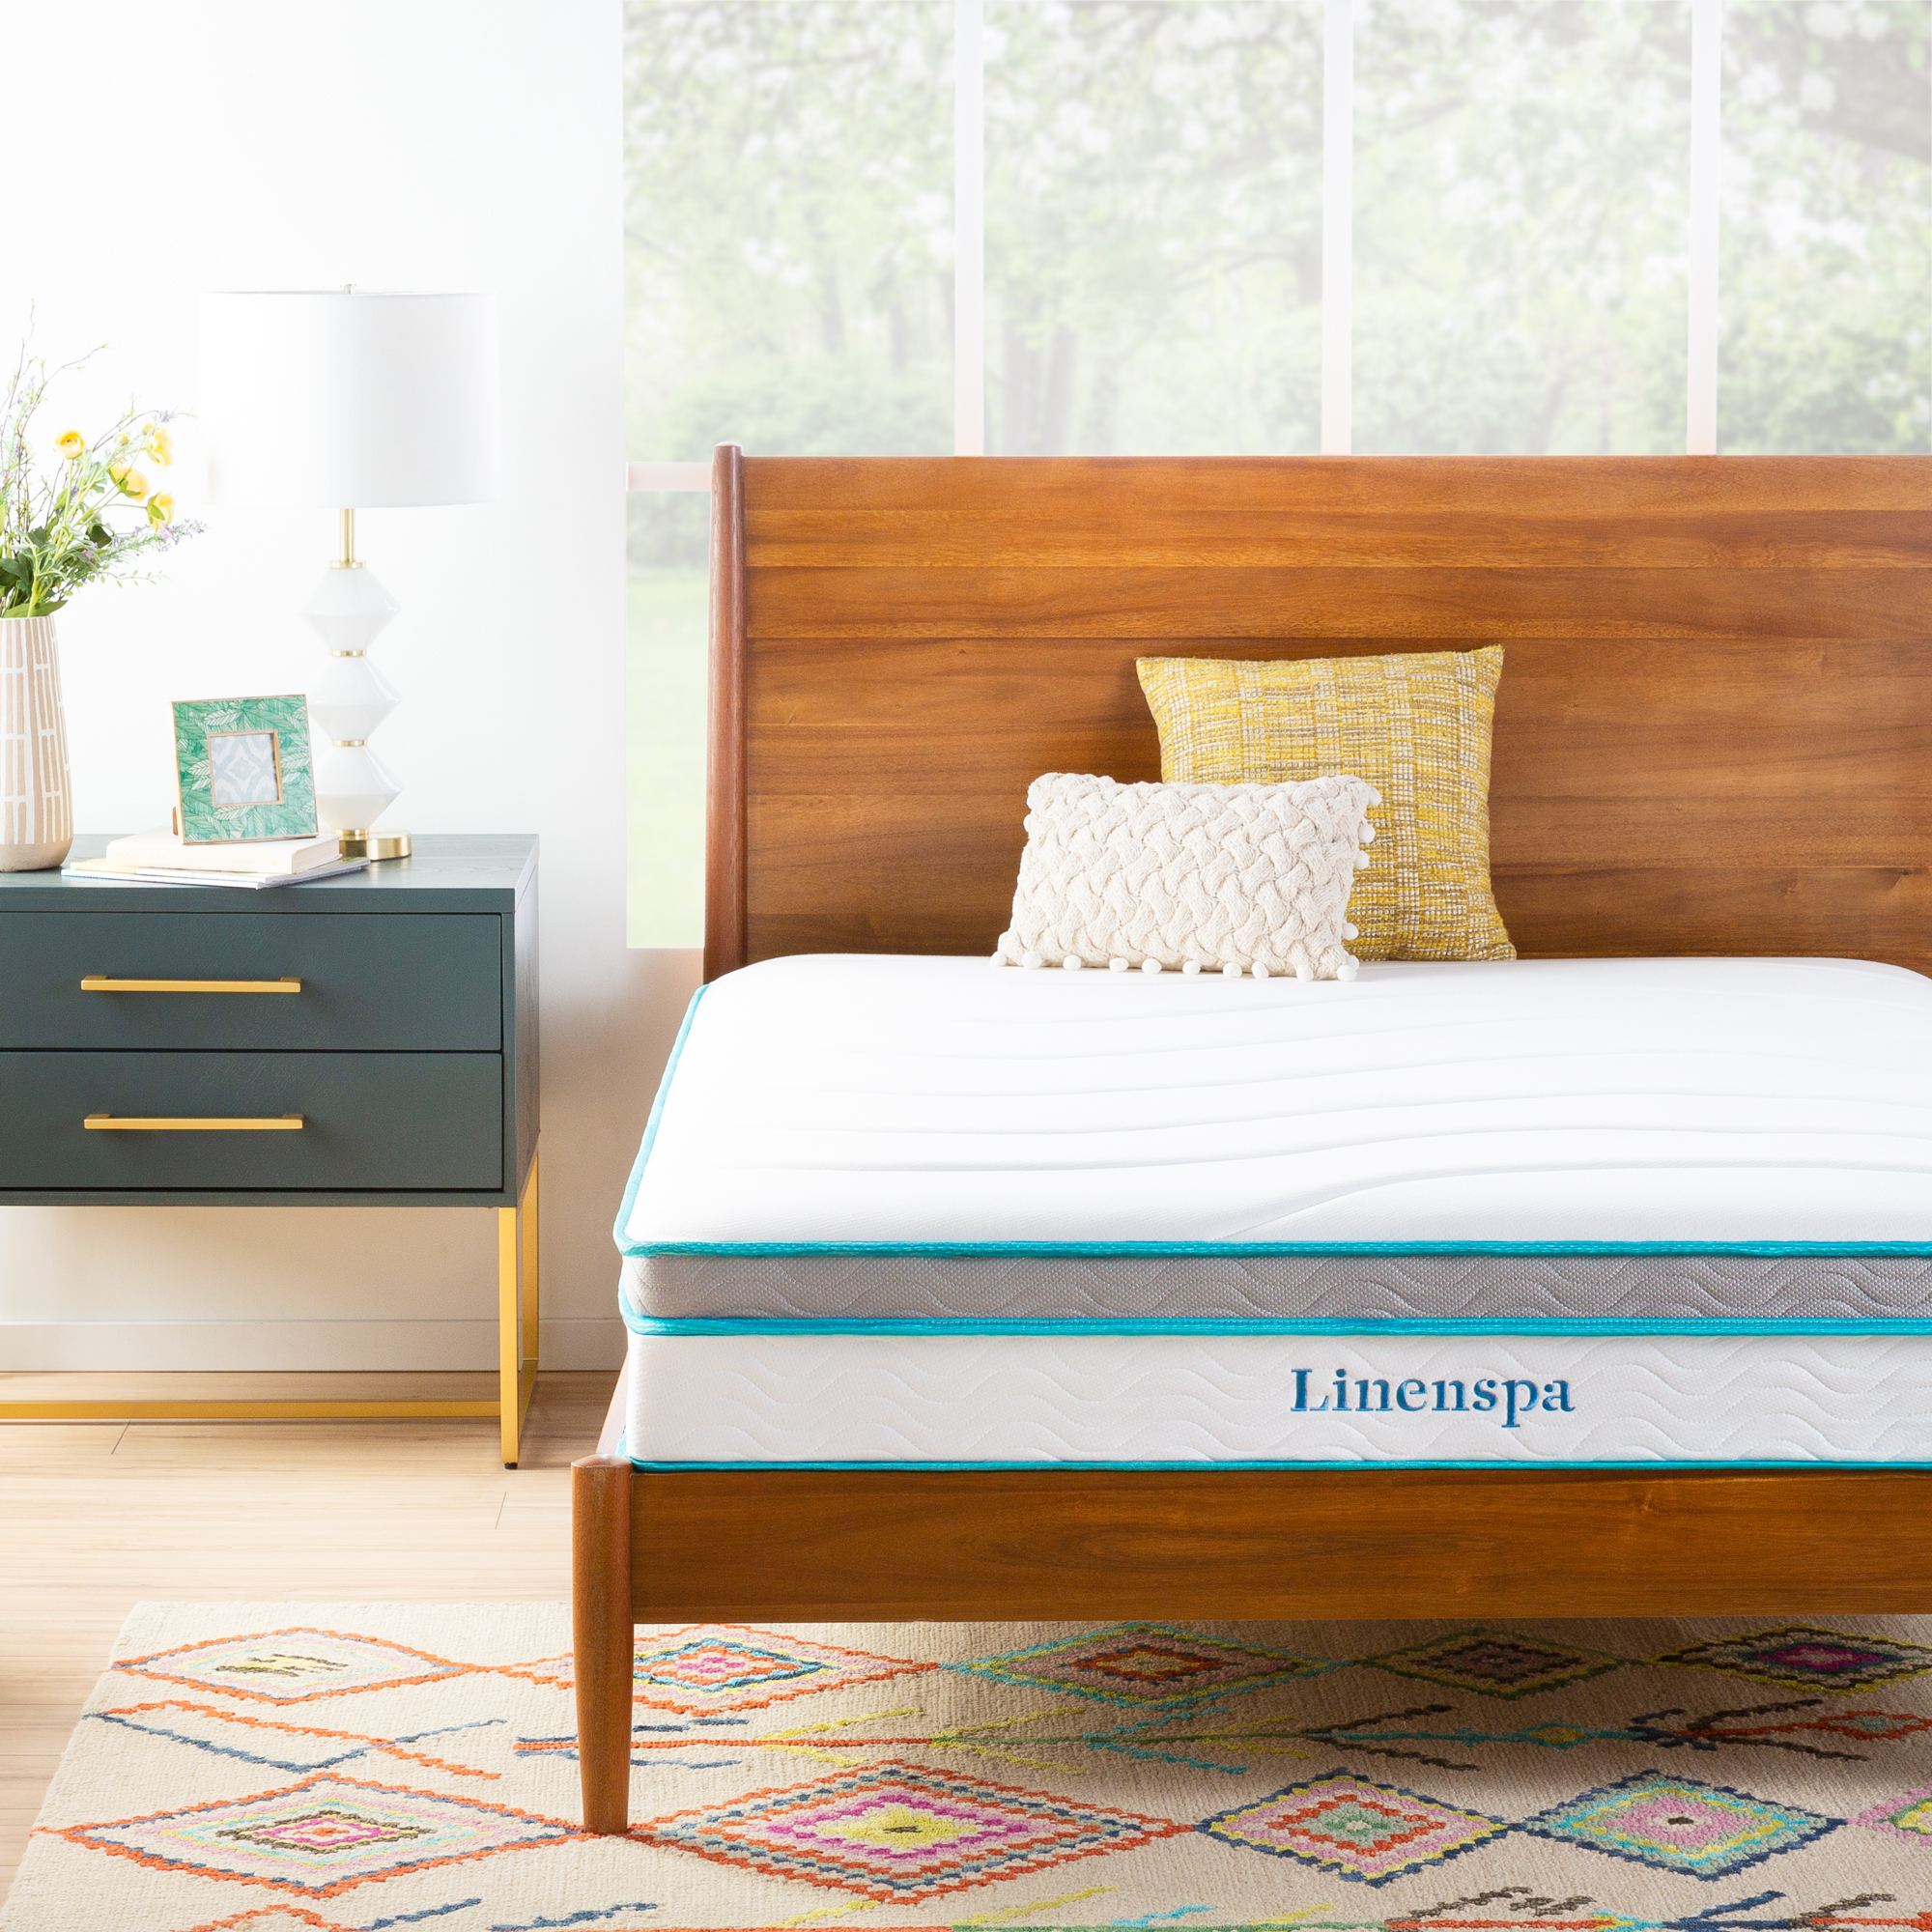 Linenspa Memory Foam and Innerspring Hybrid Mattress Review - Cover Image